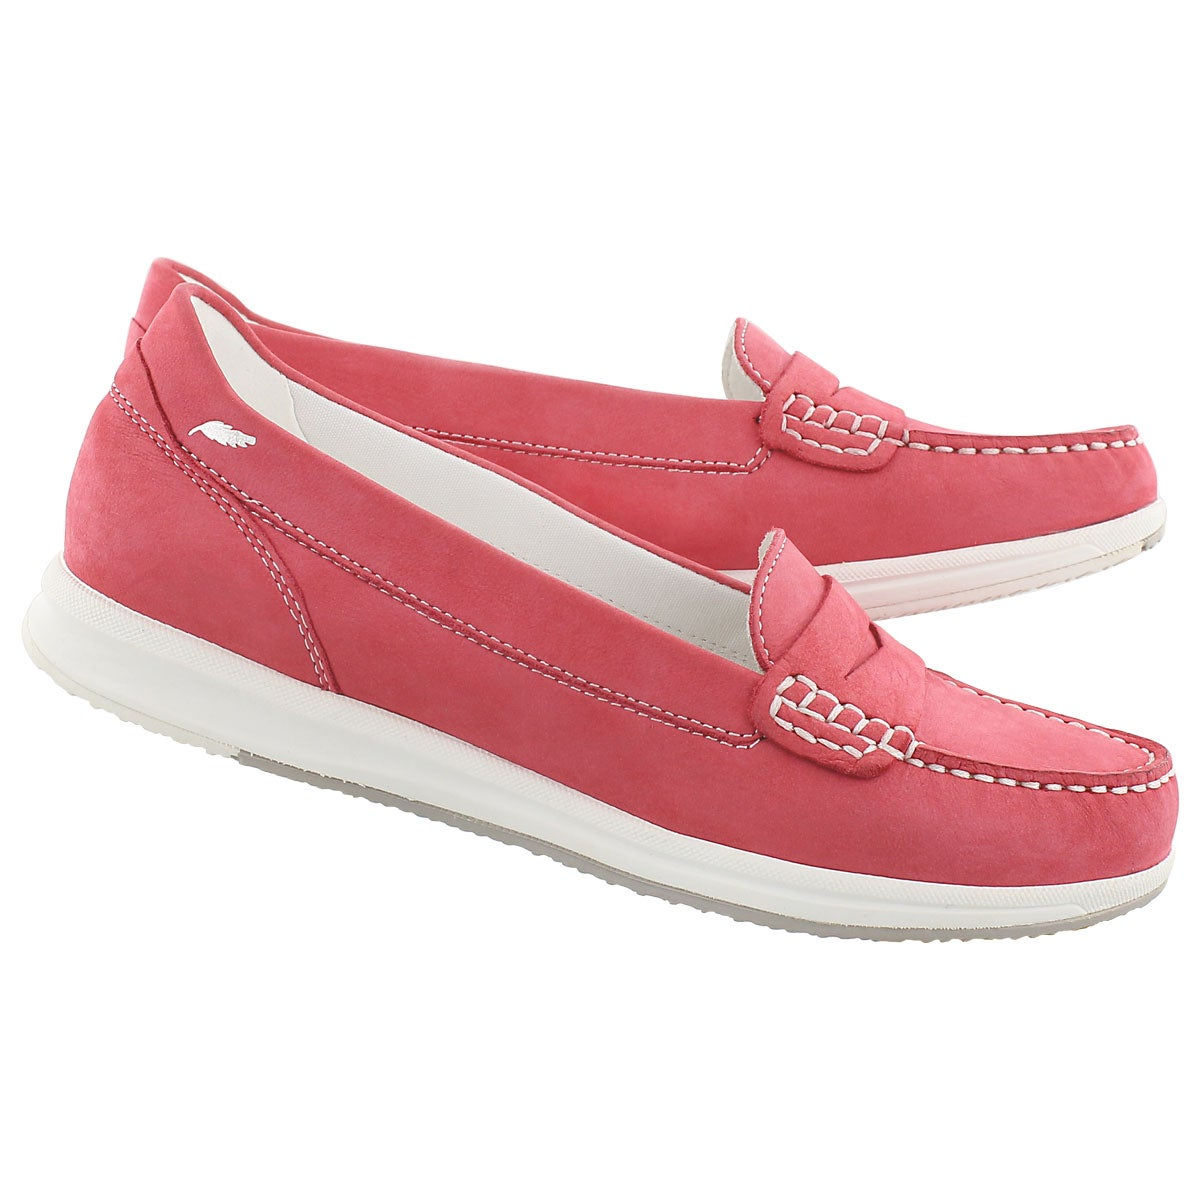 Lds Avery coral slip on casual loafer